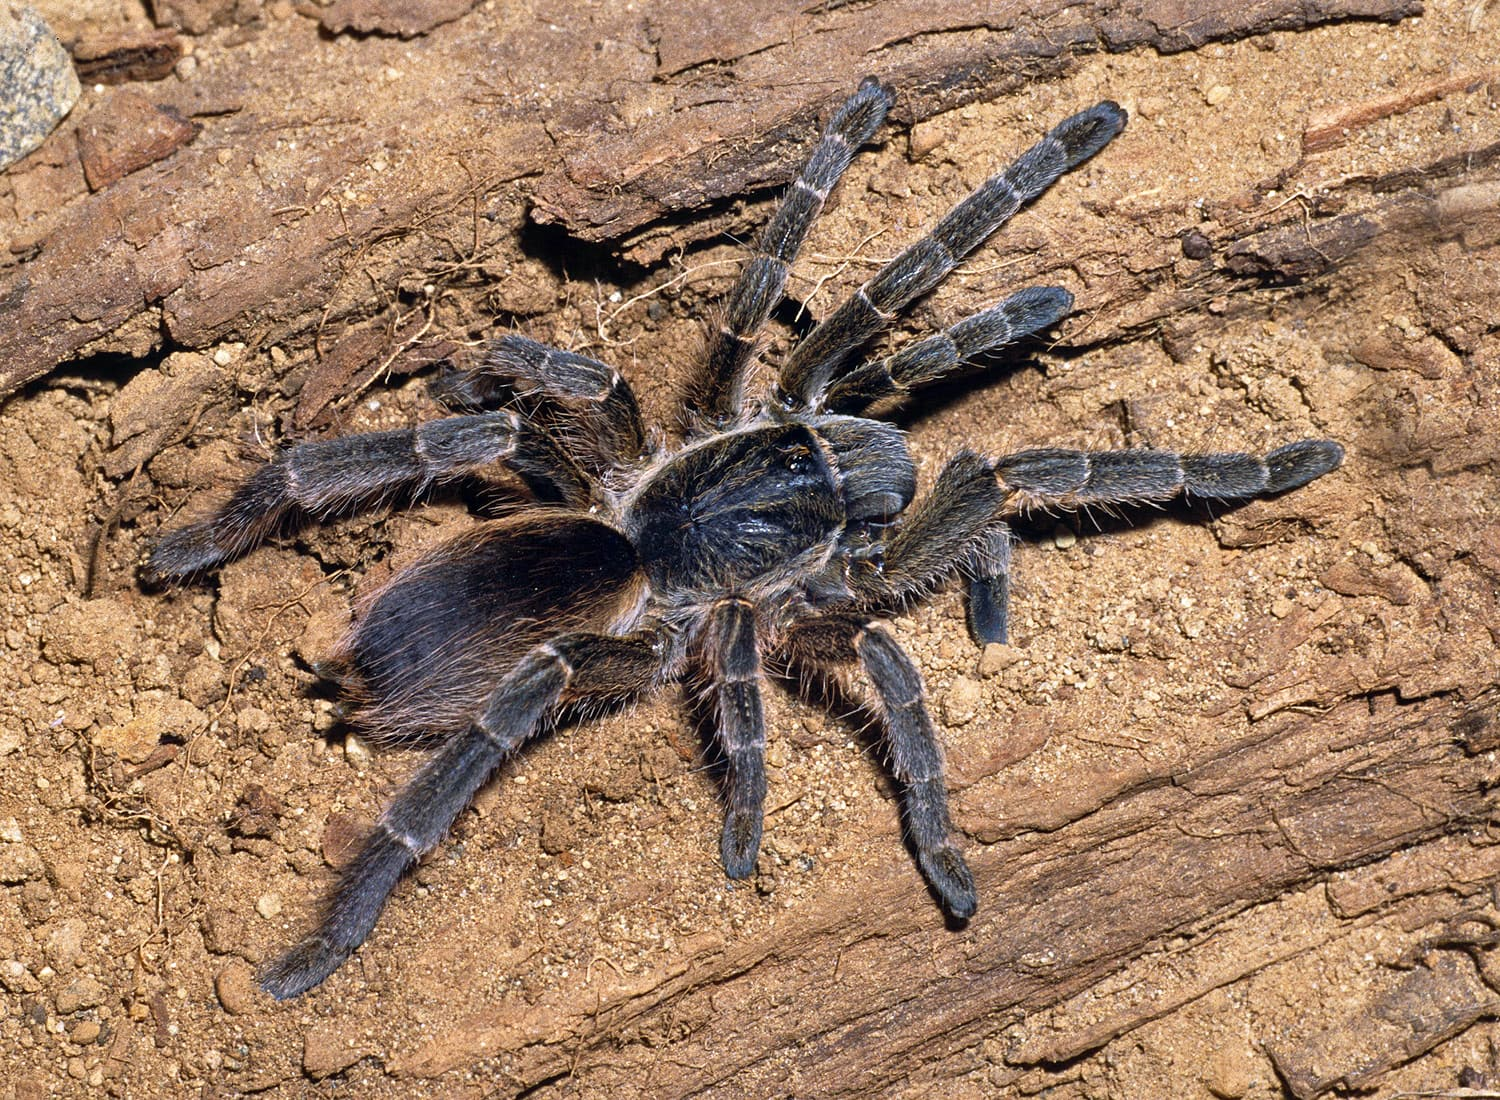 Picture of Eucratoscelus constrictus (African Red-rump Baboon Spider) - Female - Dorsal